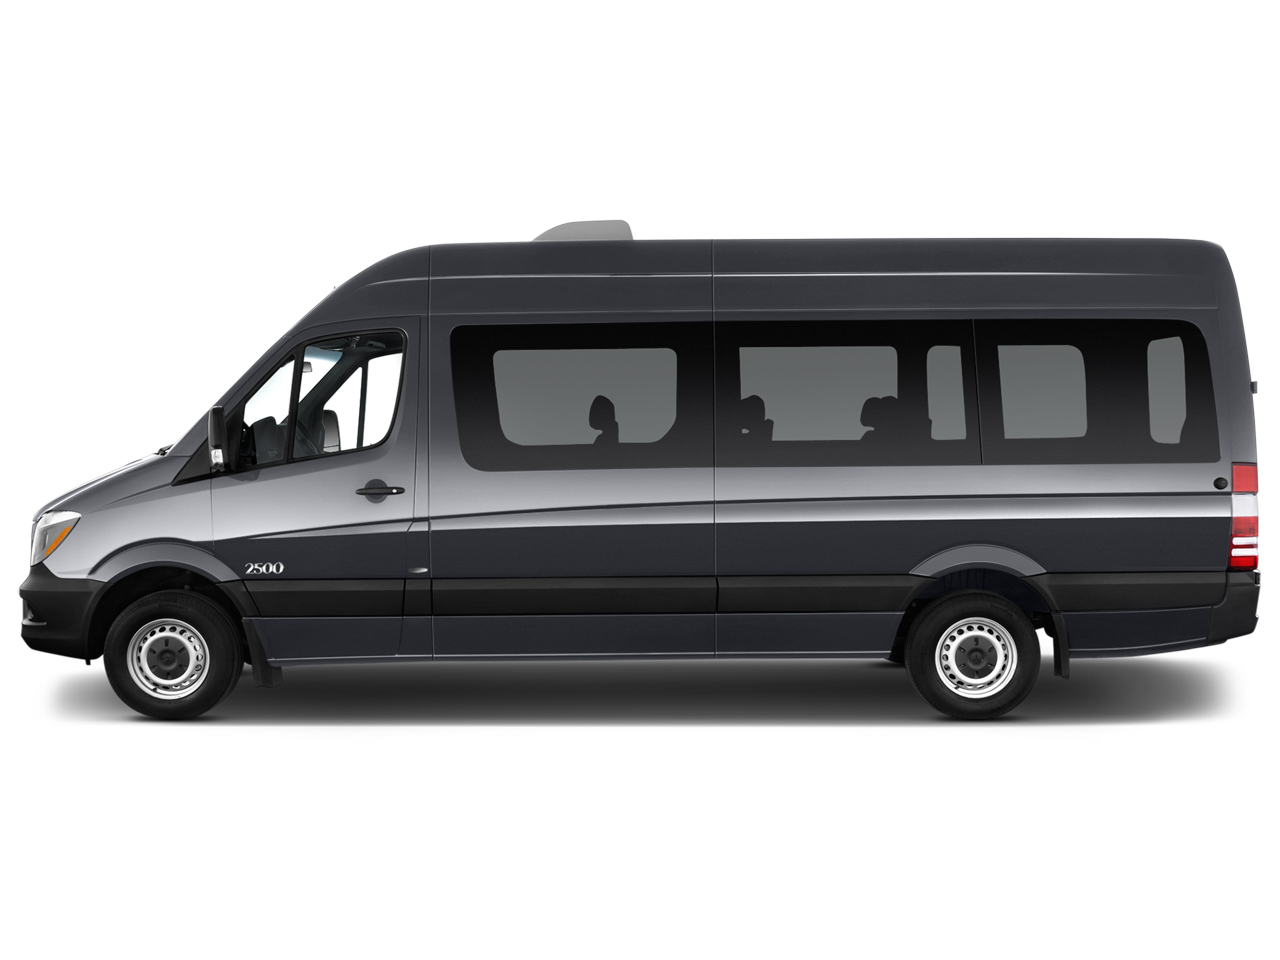 Used Trucks Houston >> New and Used Mercedes-Benz Sprinter Passenger Van: Prices, Photos, Reviews, Specs - The Car ...